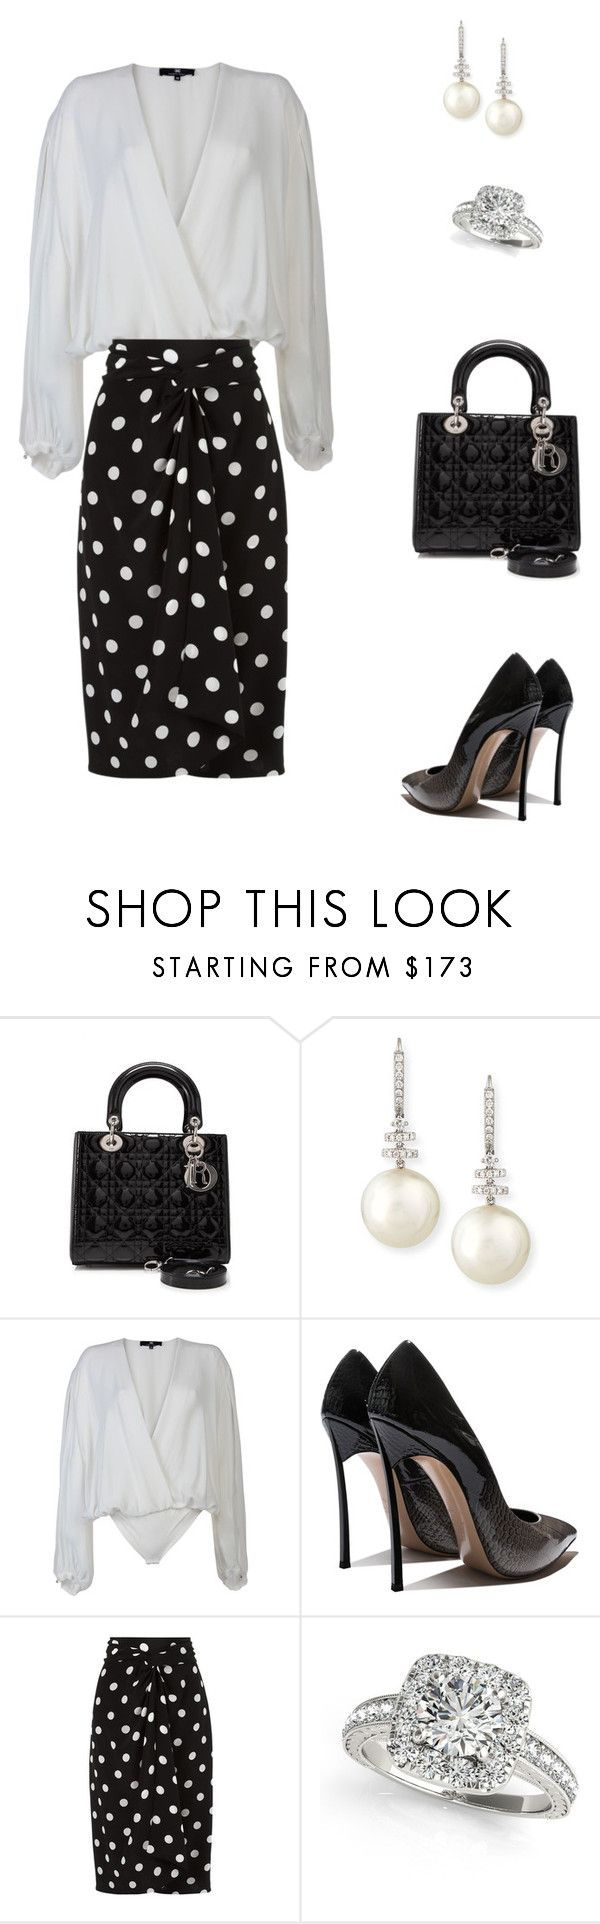 """Untitled #416"" by mitzi9 ❤ liked on Polyvore featuring Christian Dior, Belpearl, Elisabetta Franchi, Andrea Marques and Allurez"